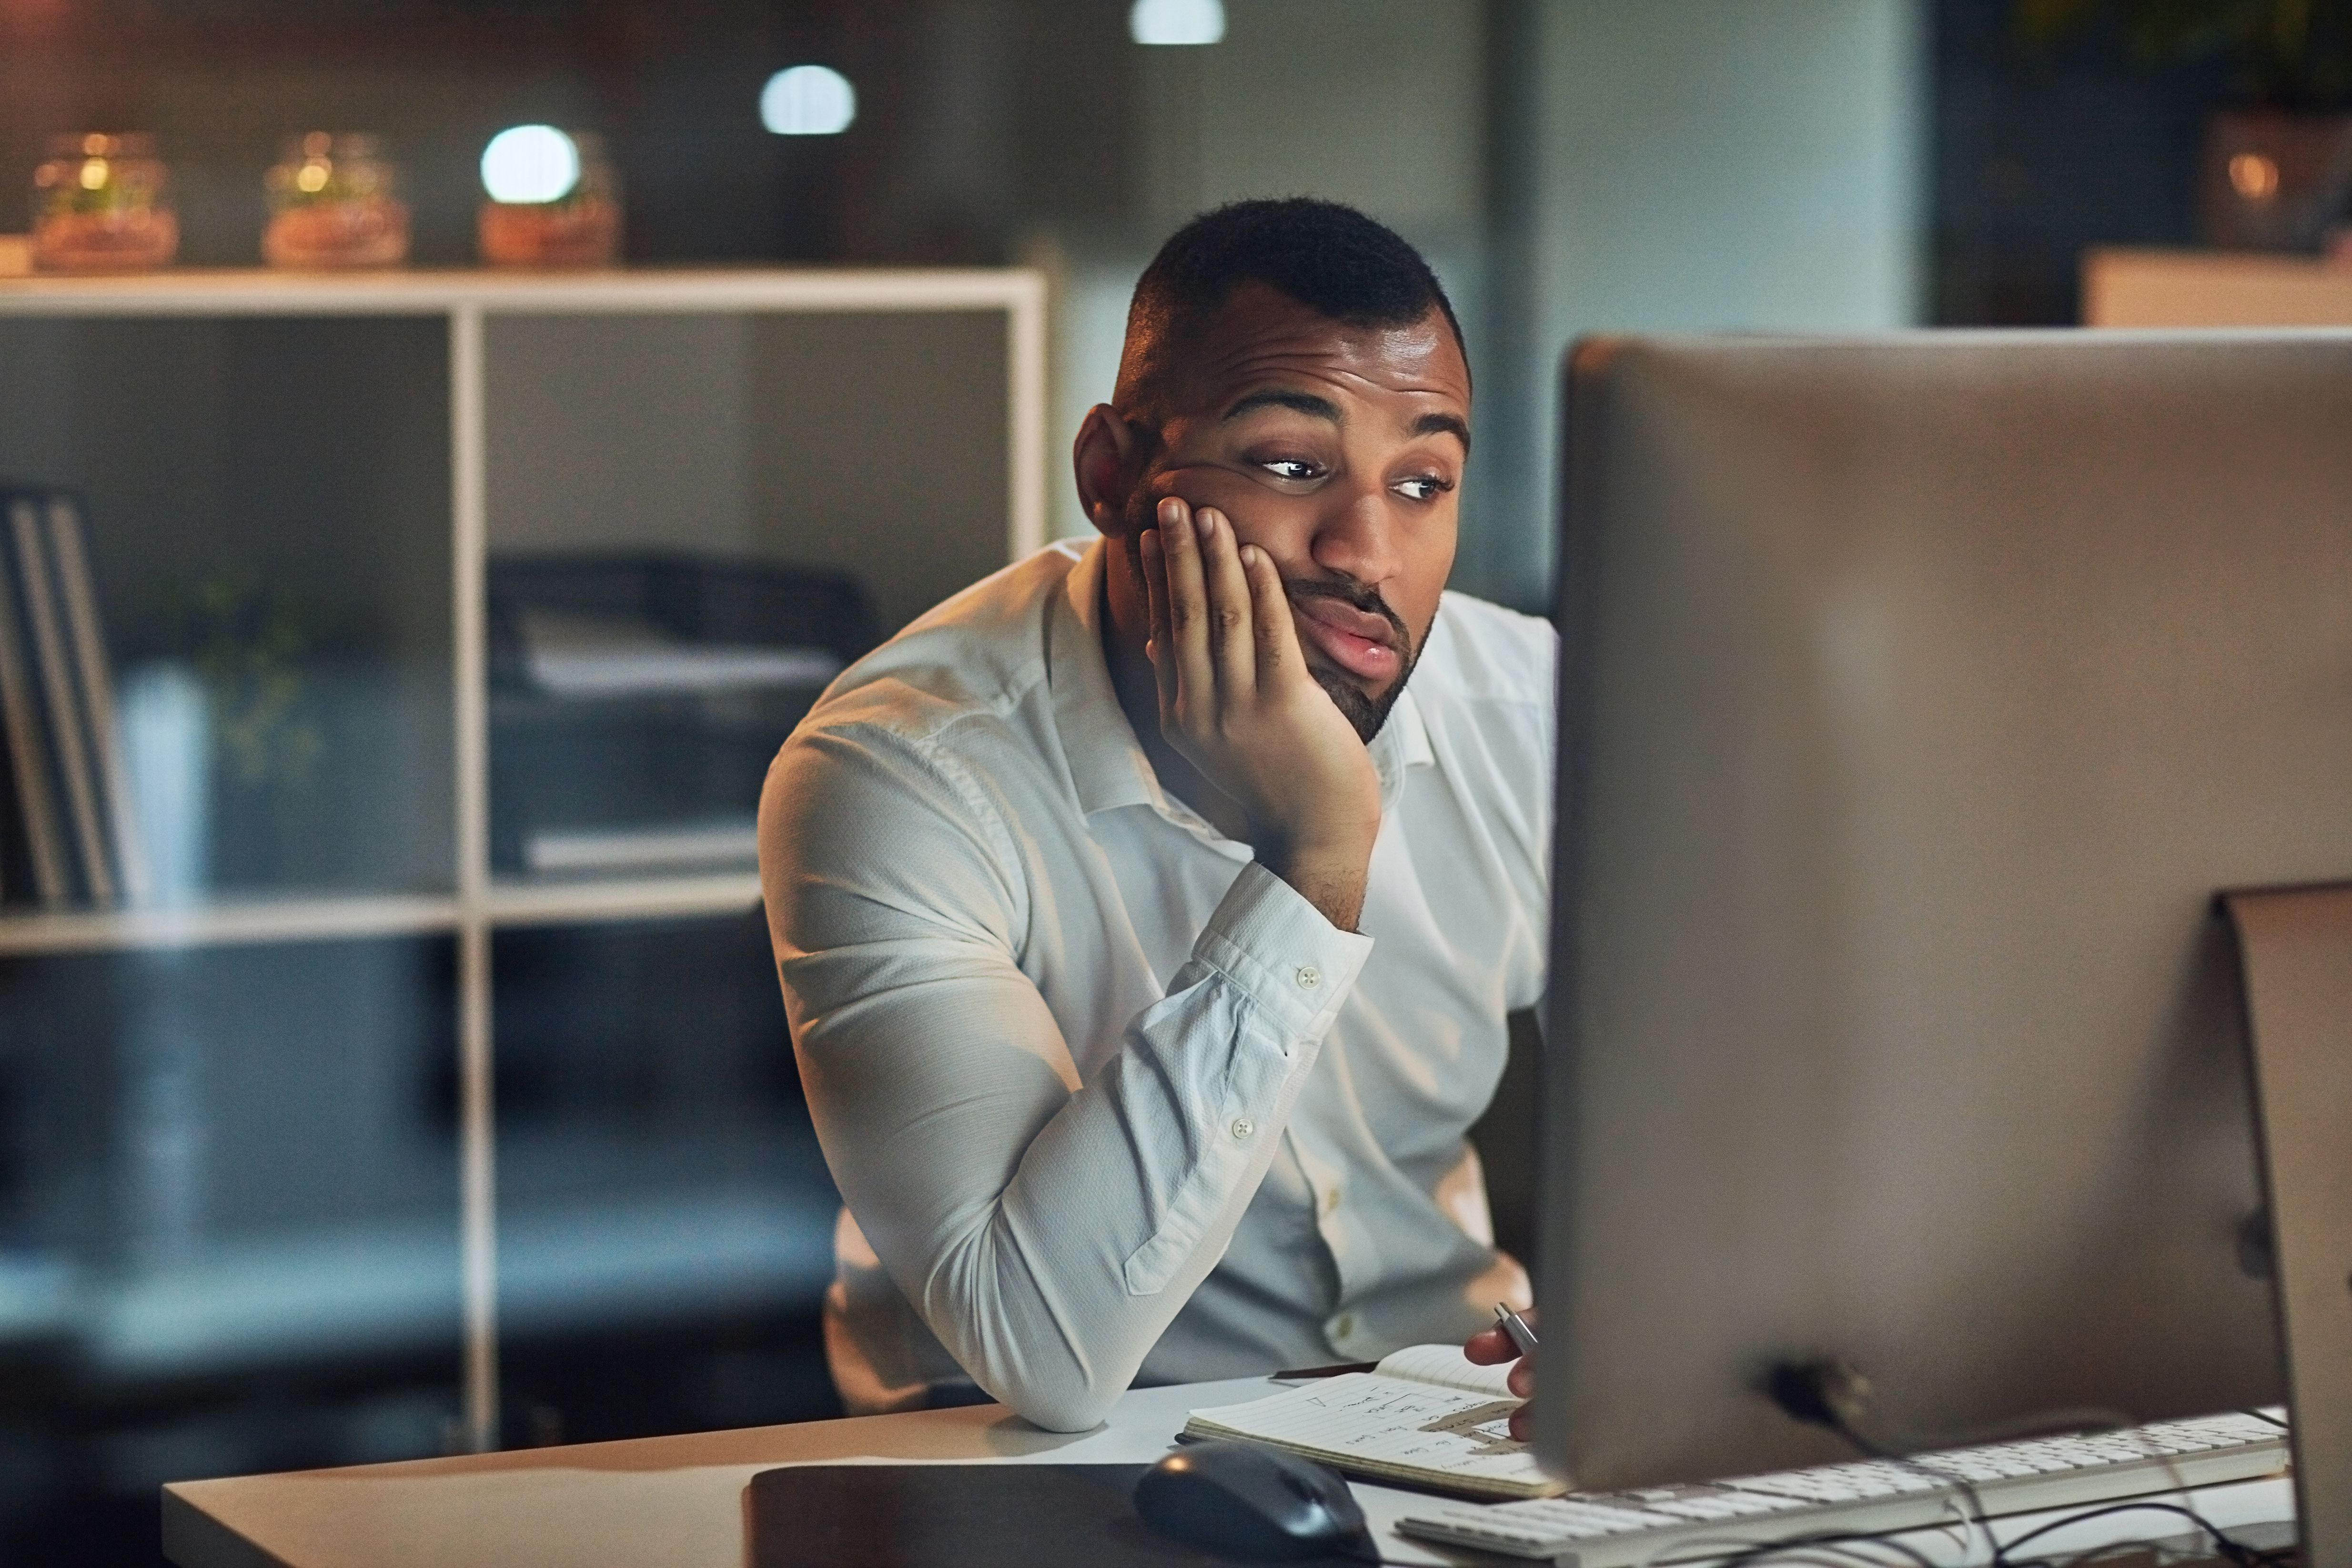 Man looking at computer screen resting his chin in his hand.